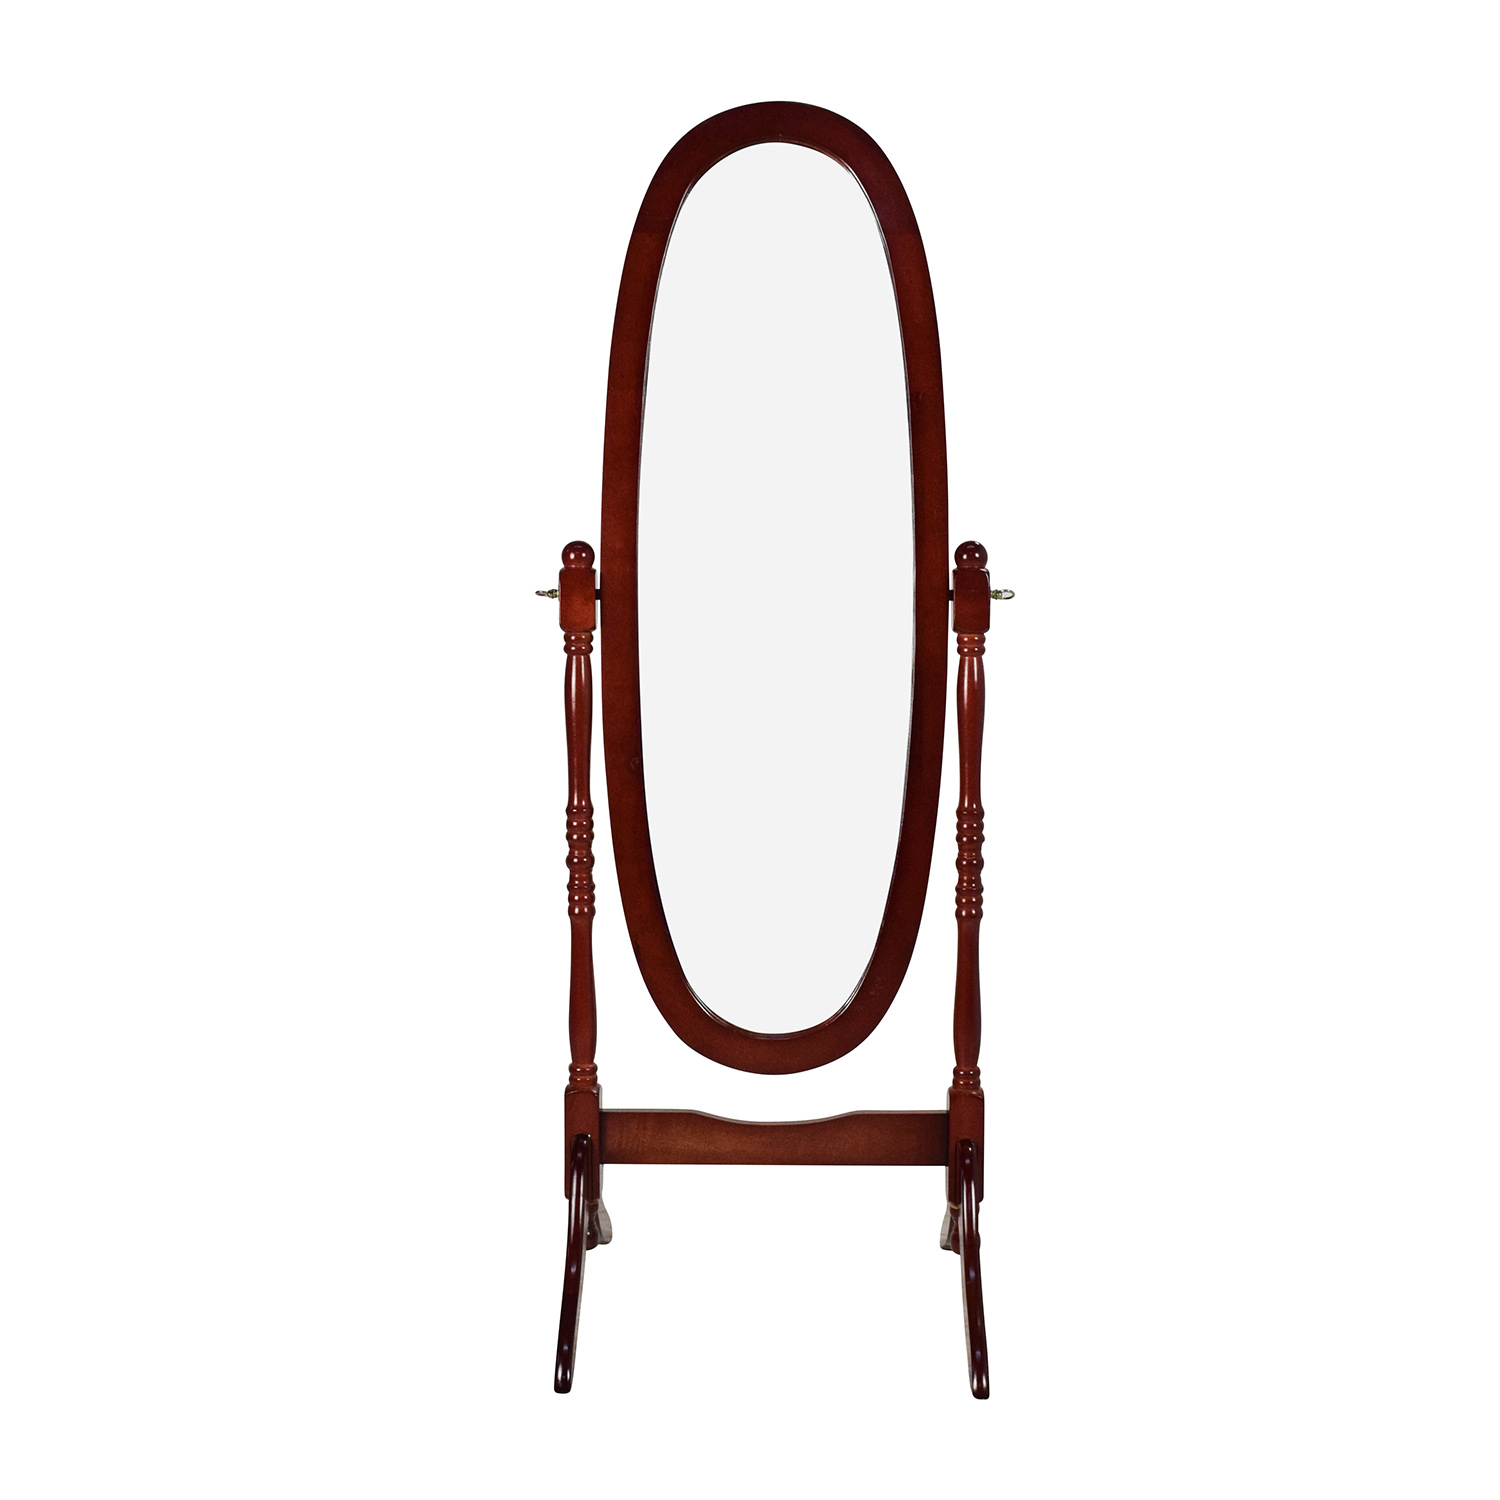 buy Large Wooden Frame Mirror Mirrors